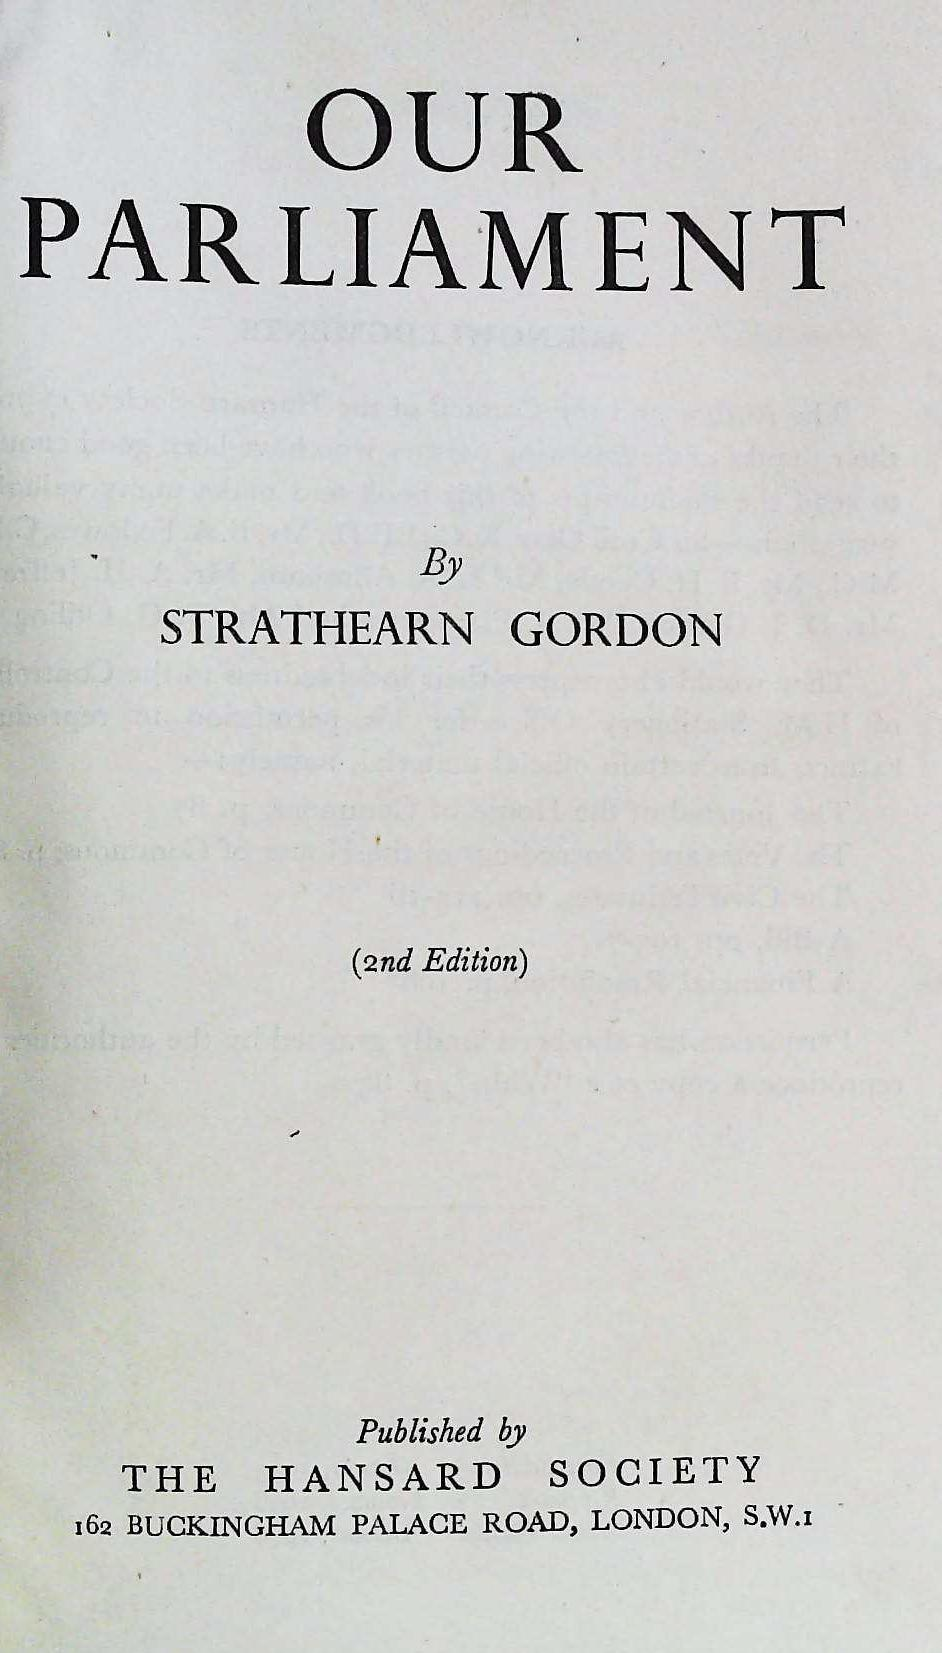 Our Parliament hardback book by Strathearn Gordon. Published 1946 Hansard Society. Previous owner - Image 3 of 4